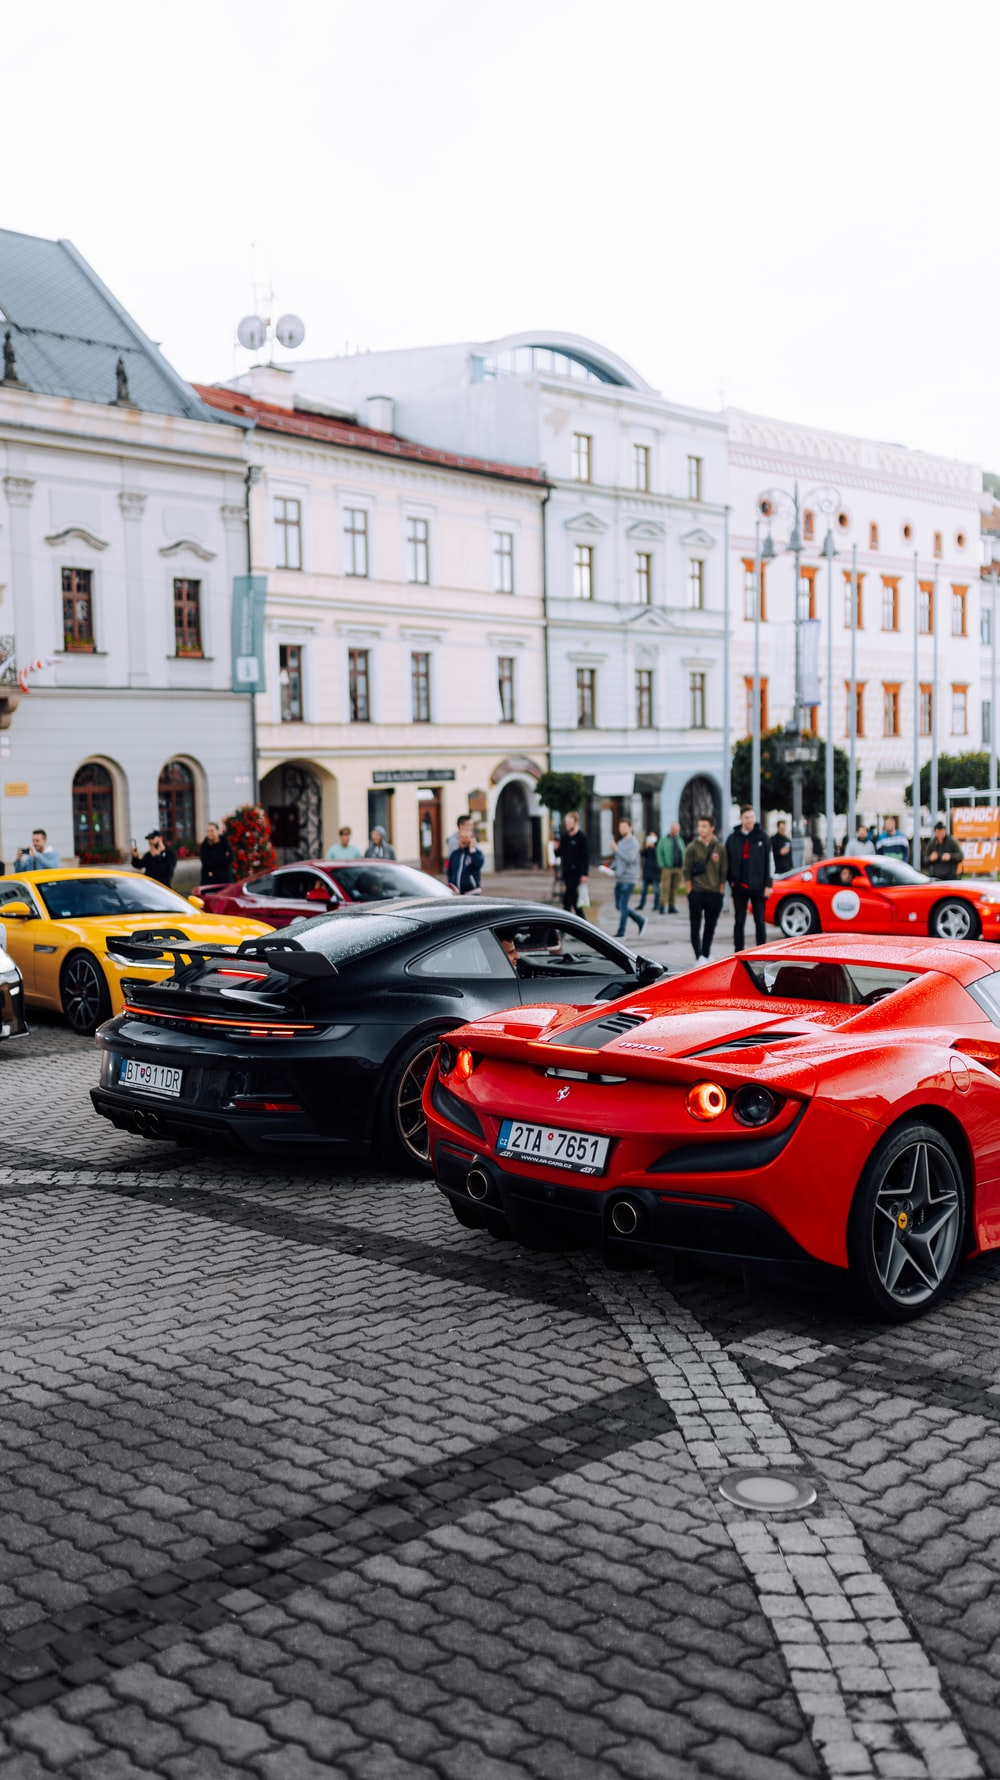 red ferrari sports car parked on street during daytime